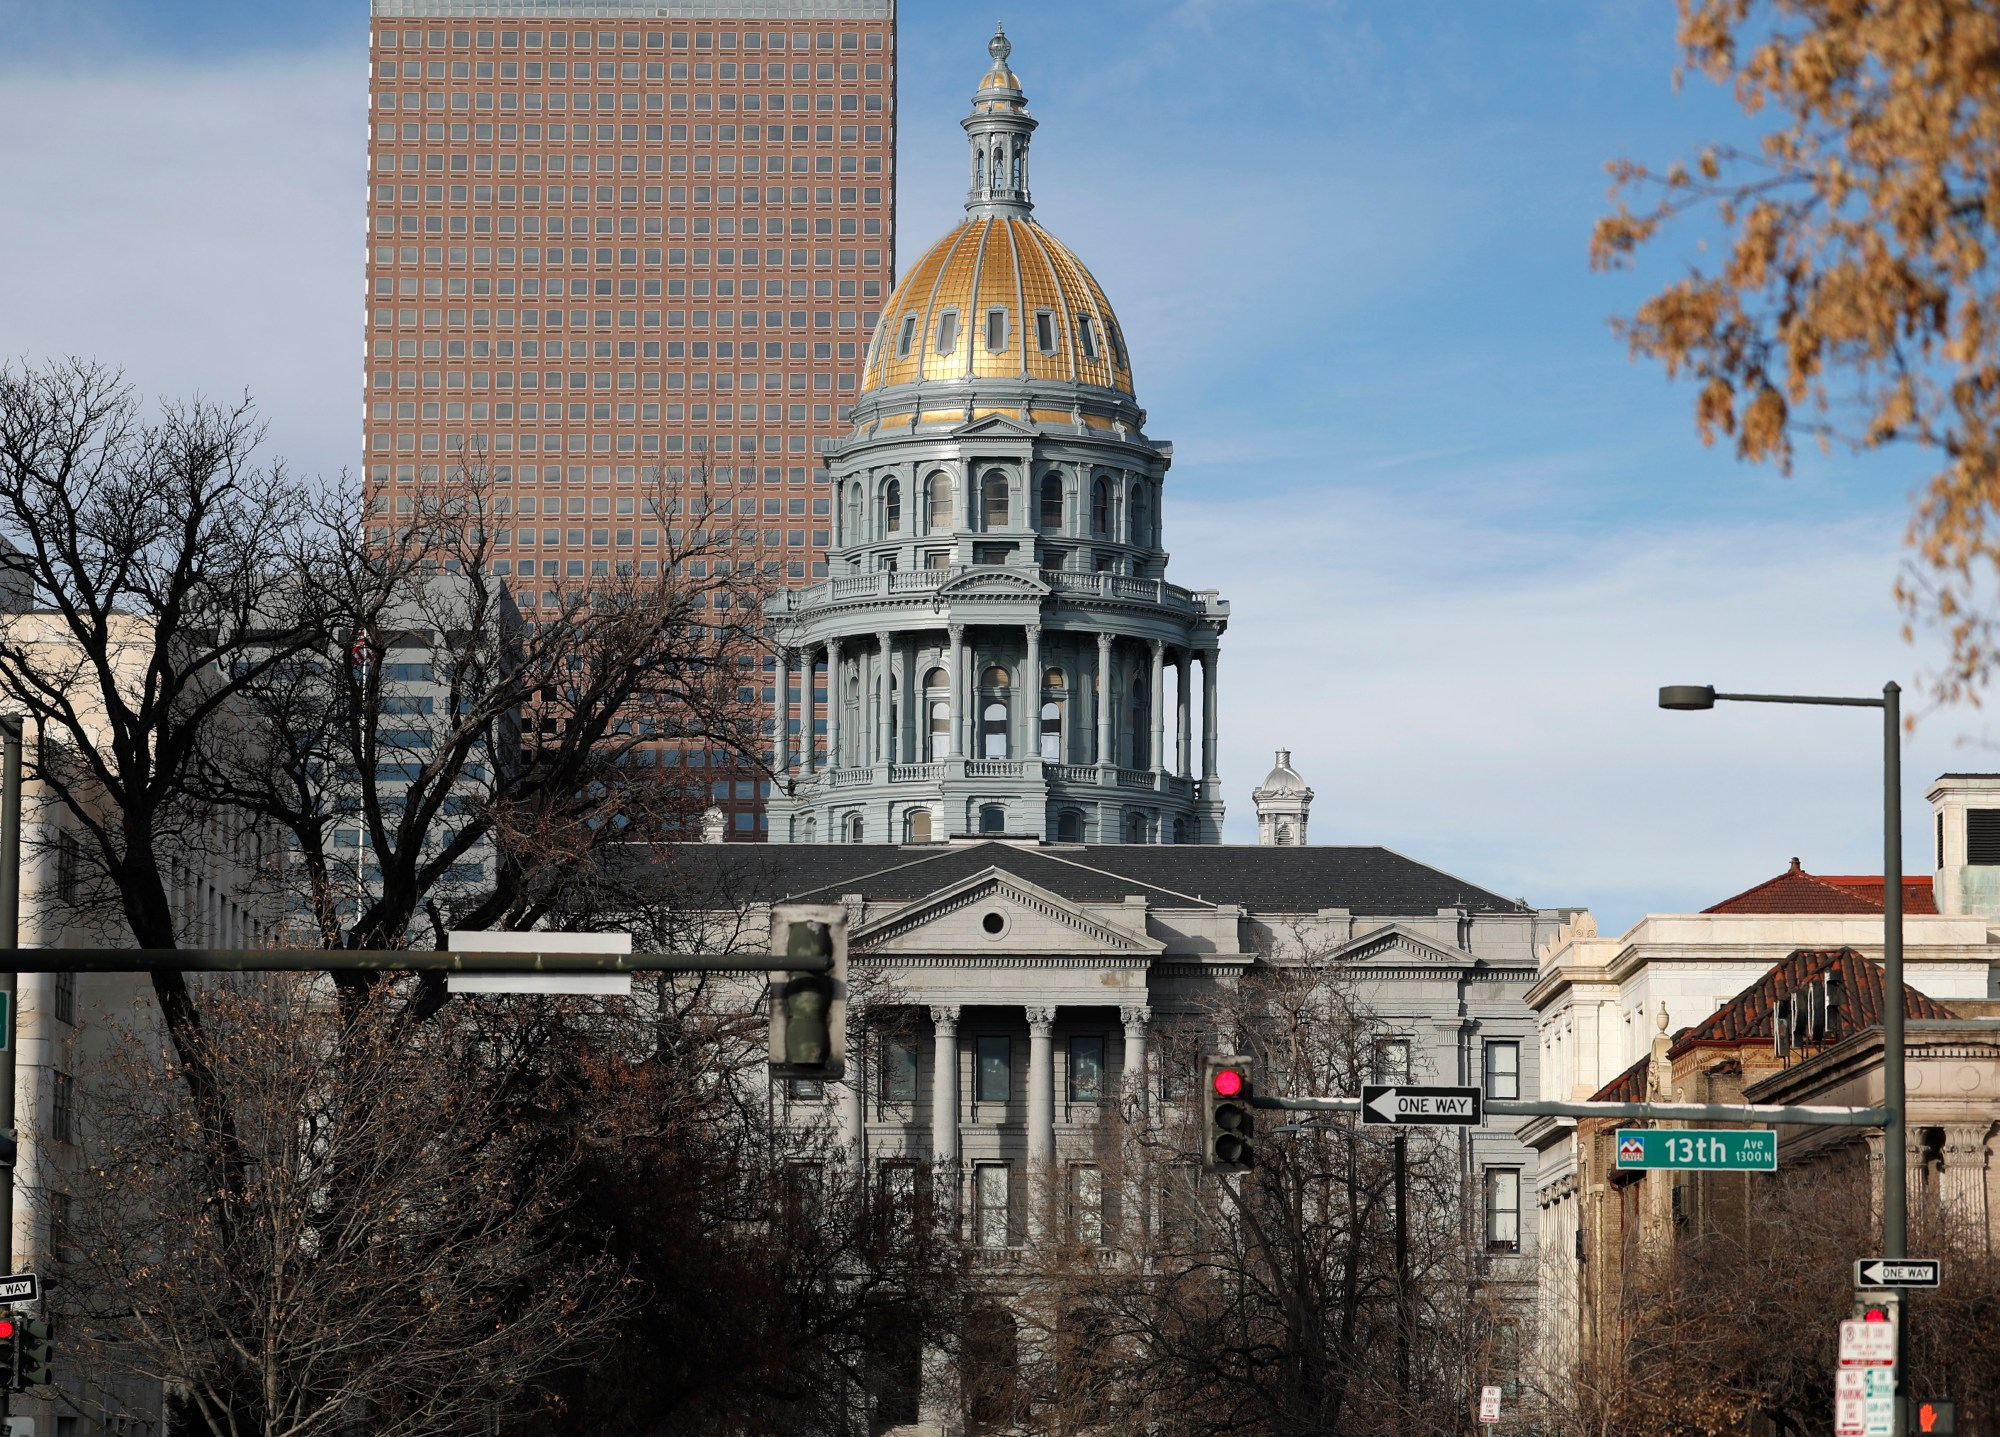 FILE - In this Saturday, Jan. 4, 2020, file photo, the State Capitol is shown in downtown Denver. (AP Photo/David Zalubowski, File)